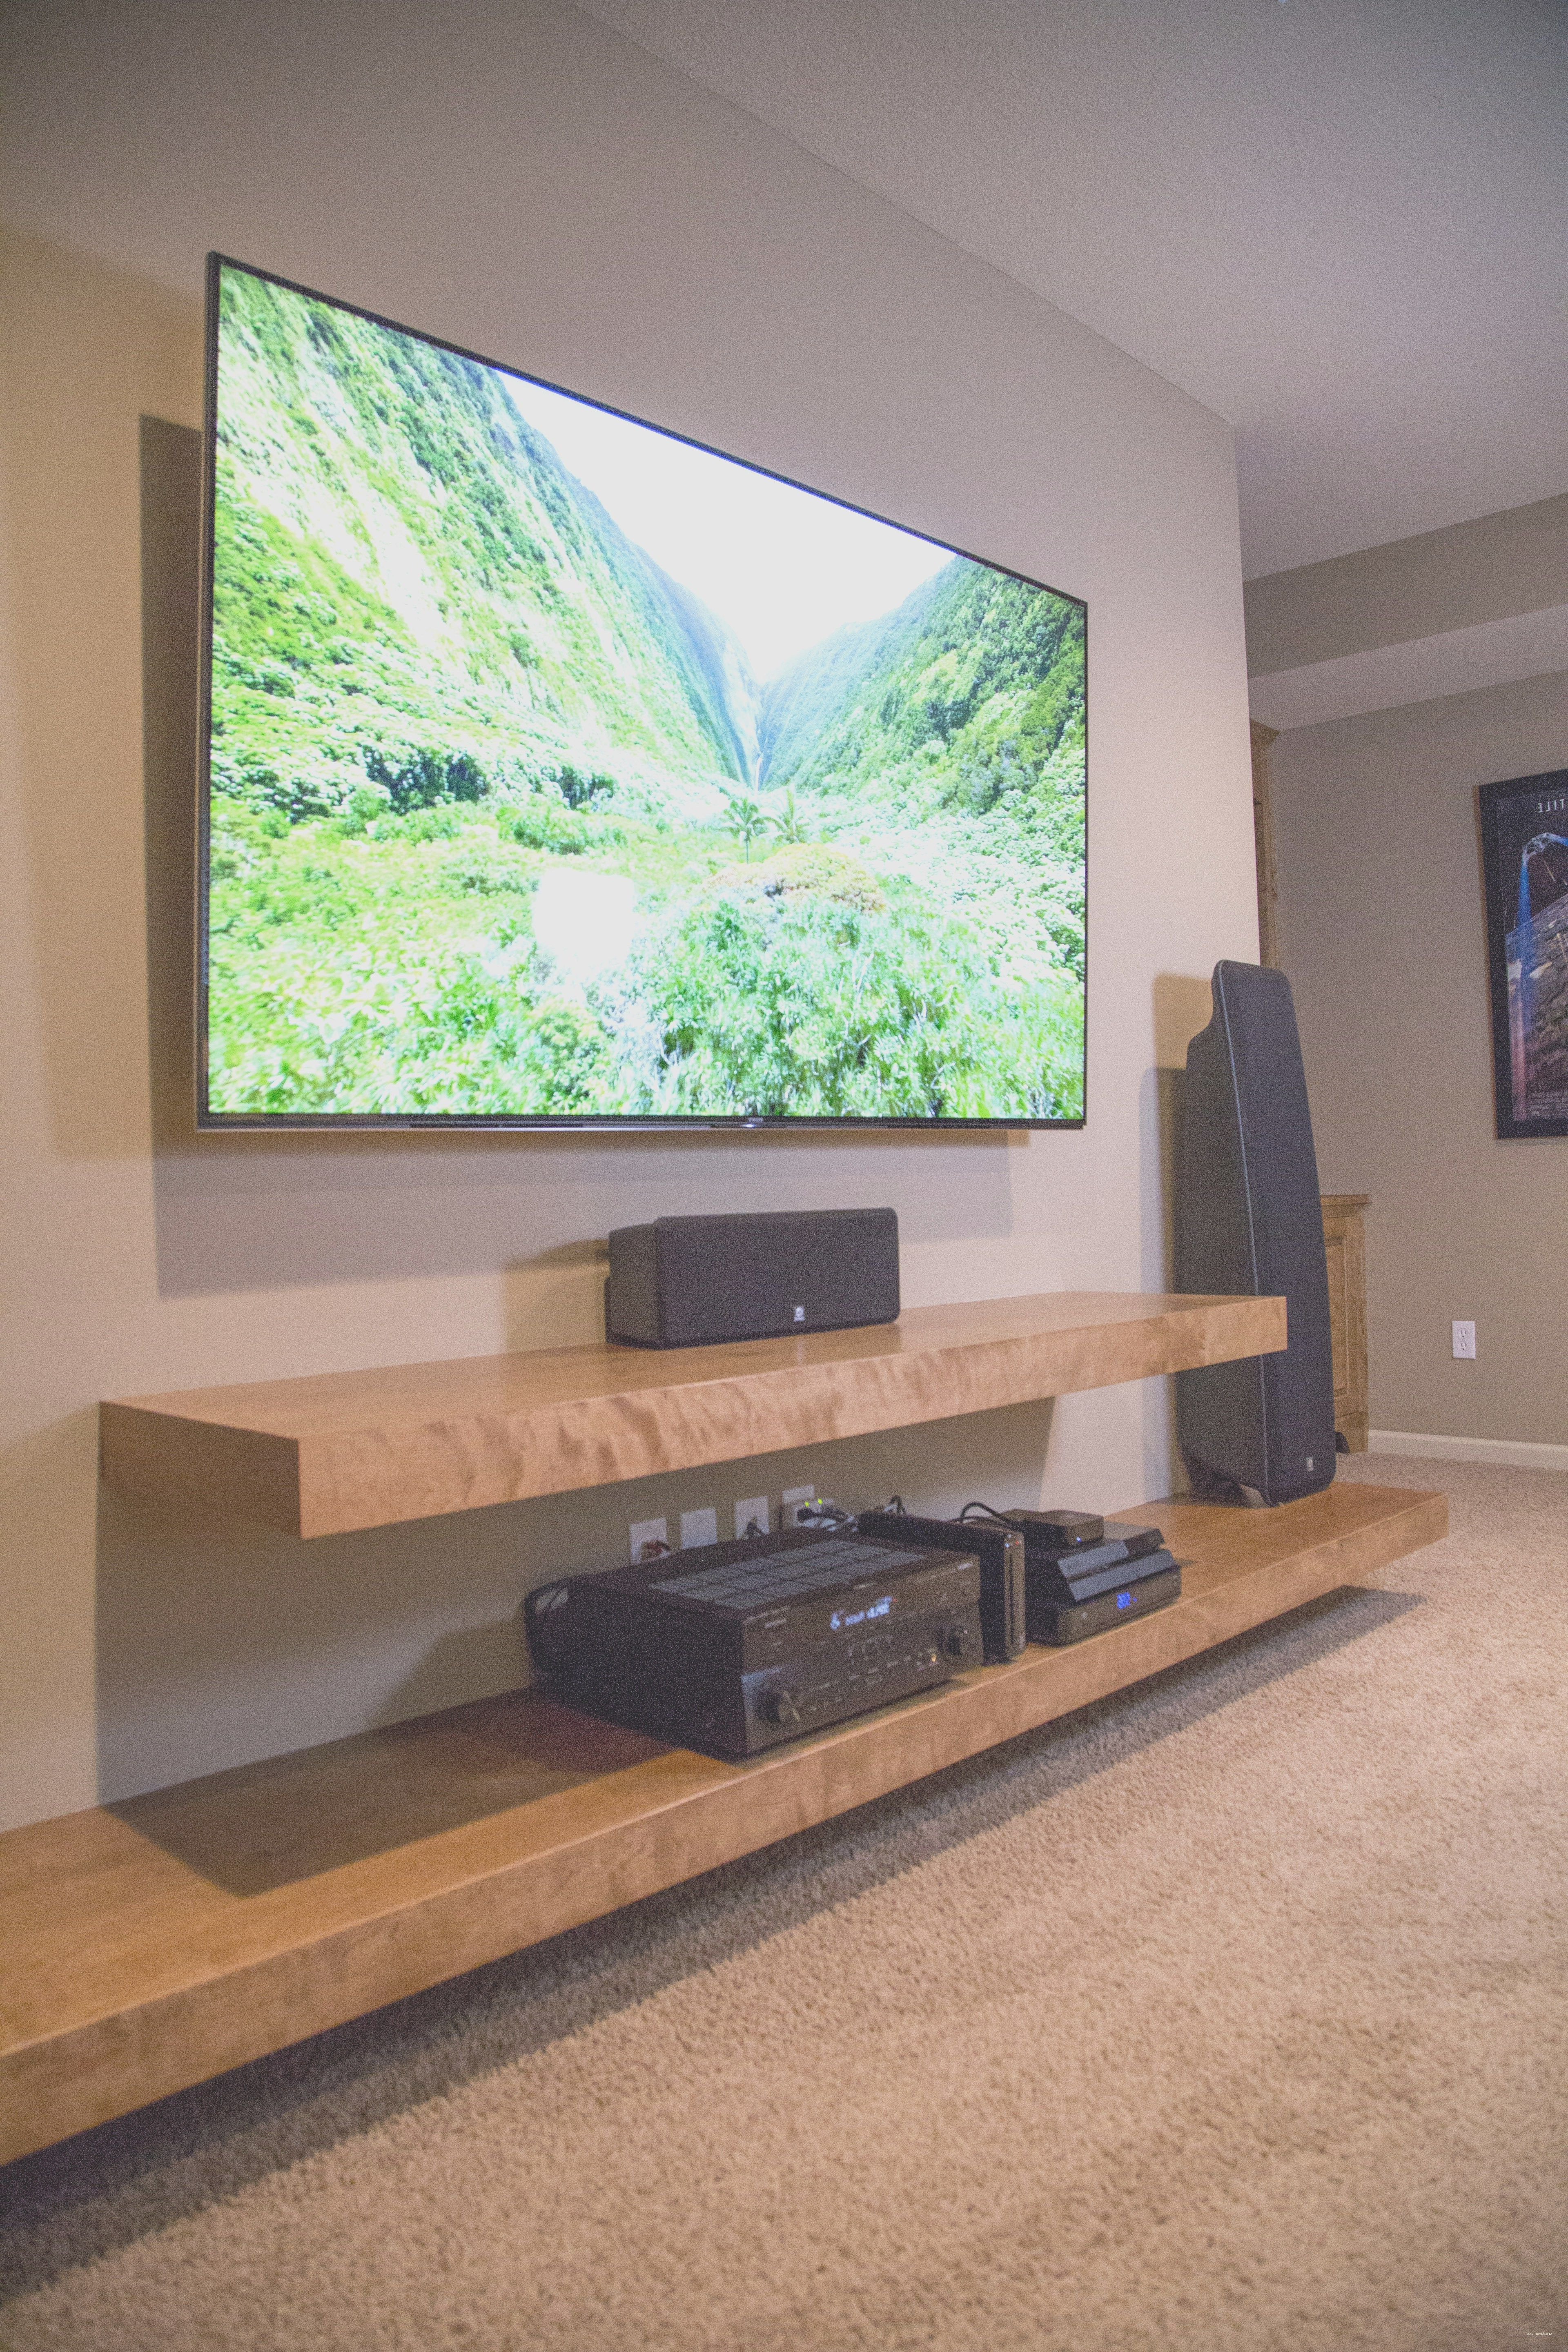 30 Beautiful Diy Tv Stand Ideas For Your Room Interior | Home Decor Regarding Kenzie 60 Inch Open Display Tv Stands (View 2 of 20)